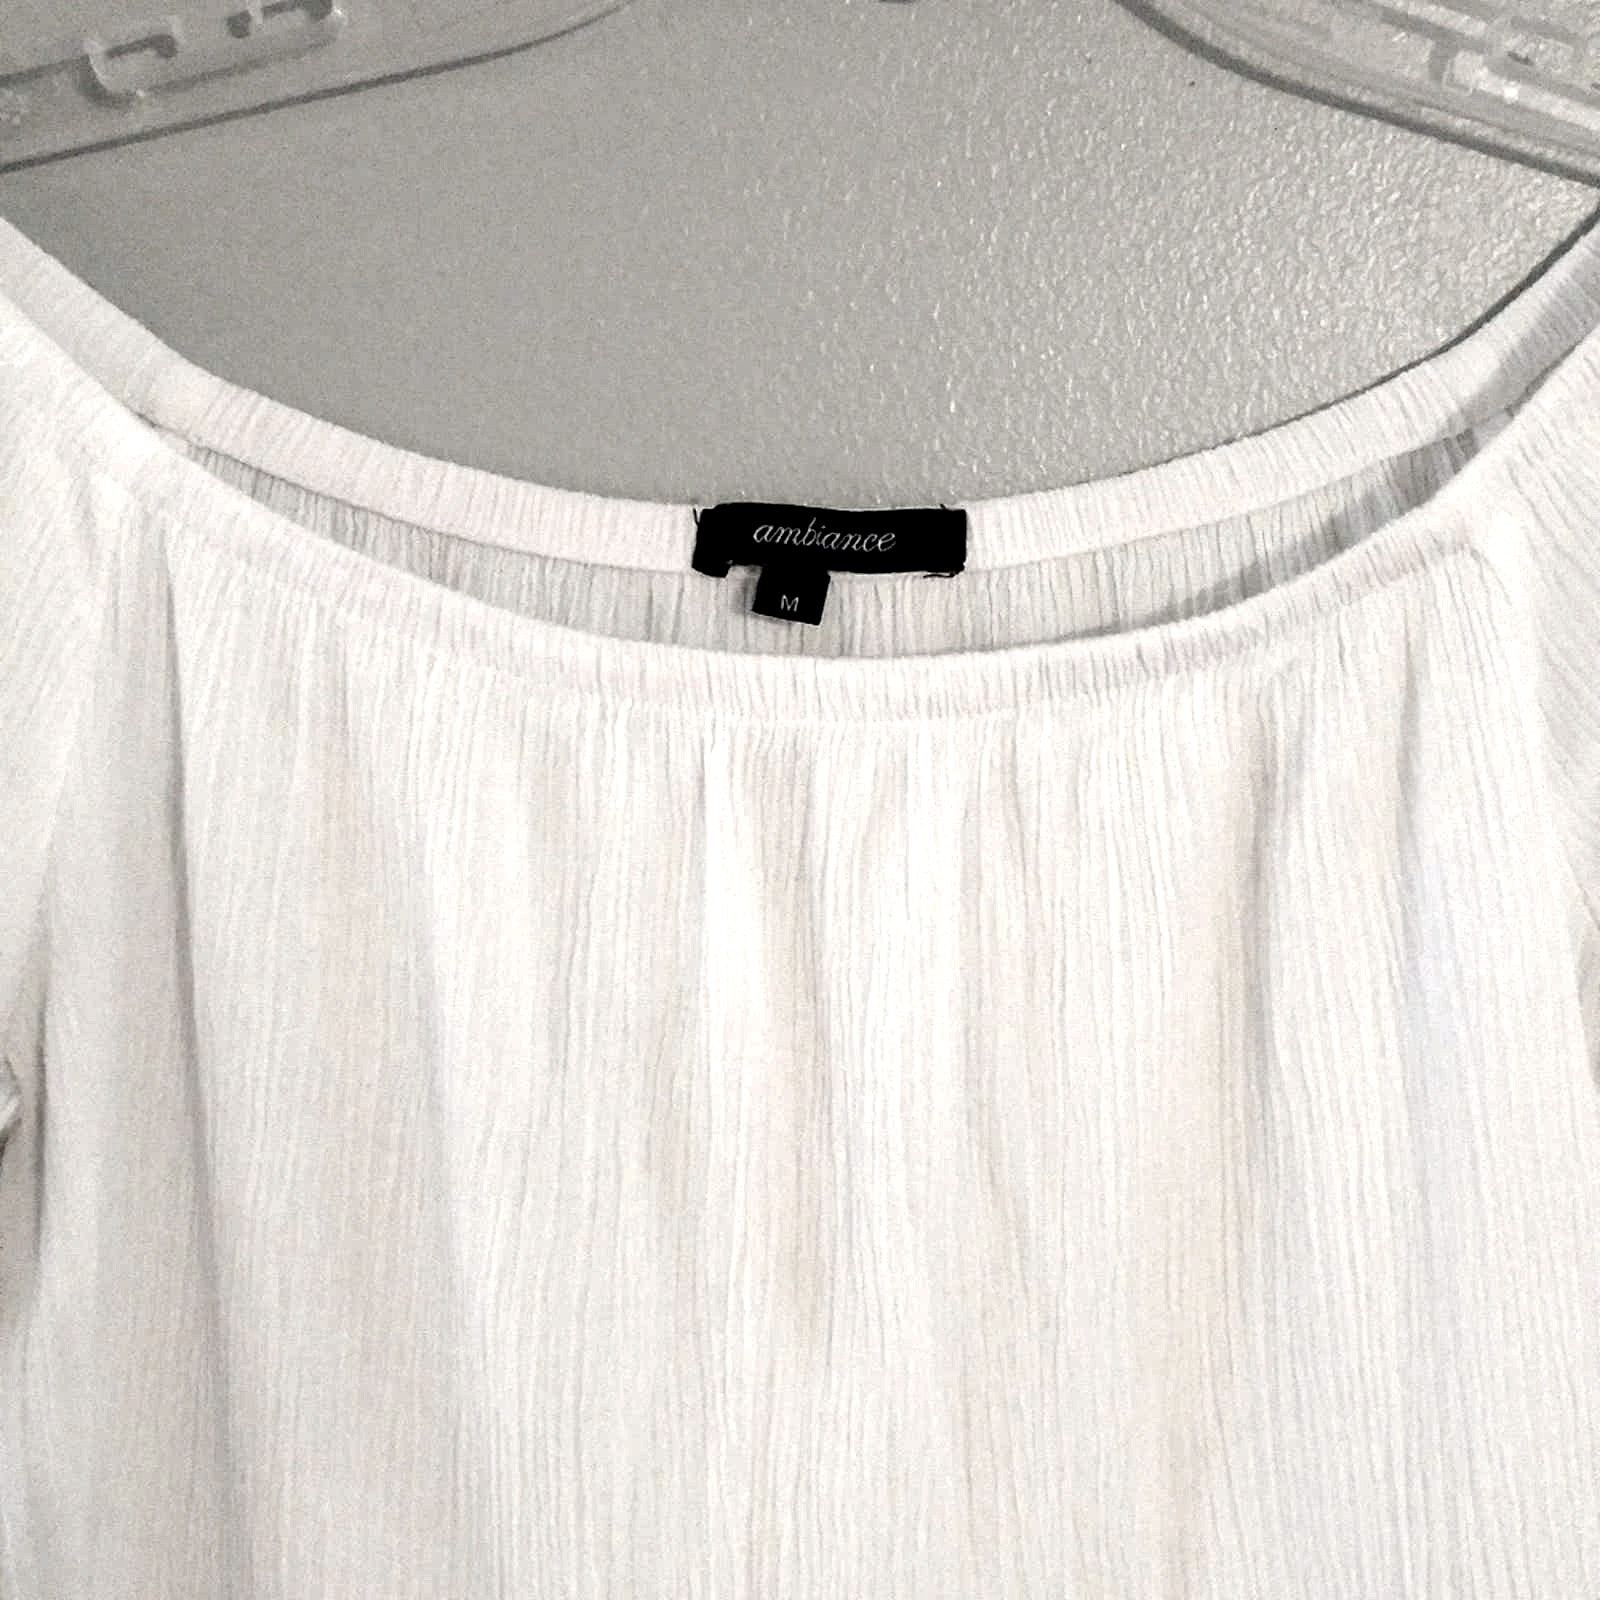 Ambiance White Lacey Fairycore crop top - image 3